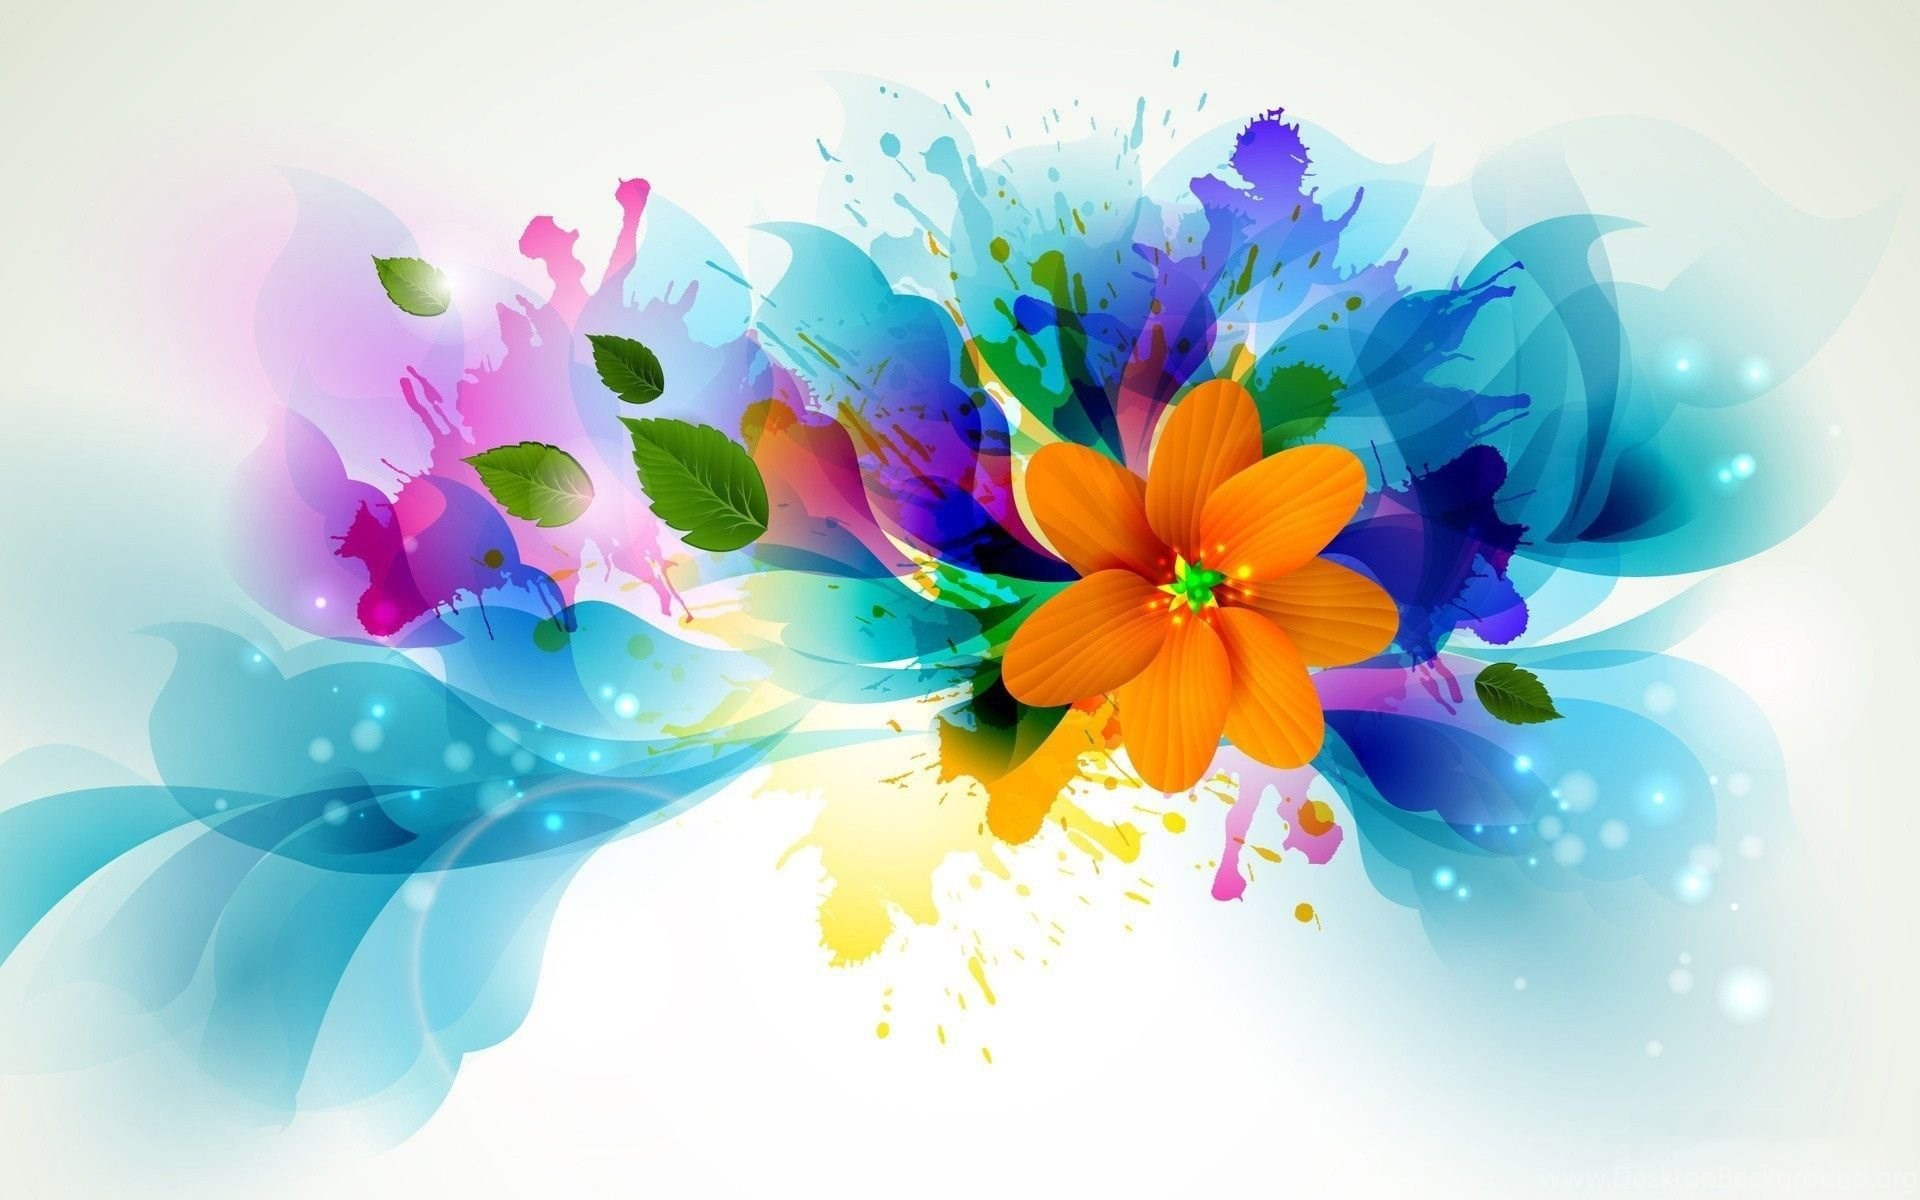 Abstract Paintings Multicolor Spiral Artwork Hd Wallpapers Hd